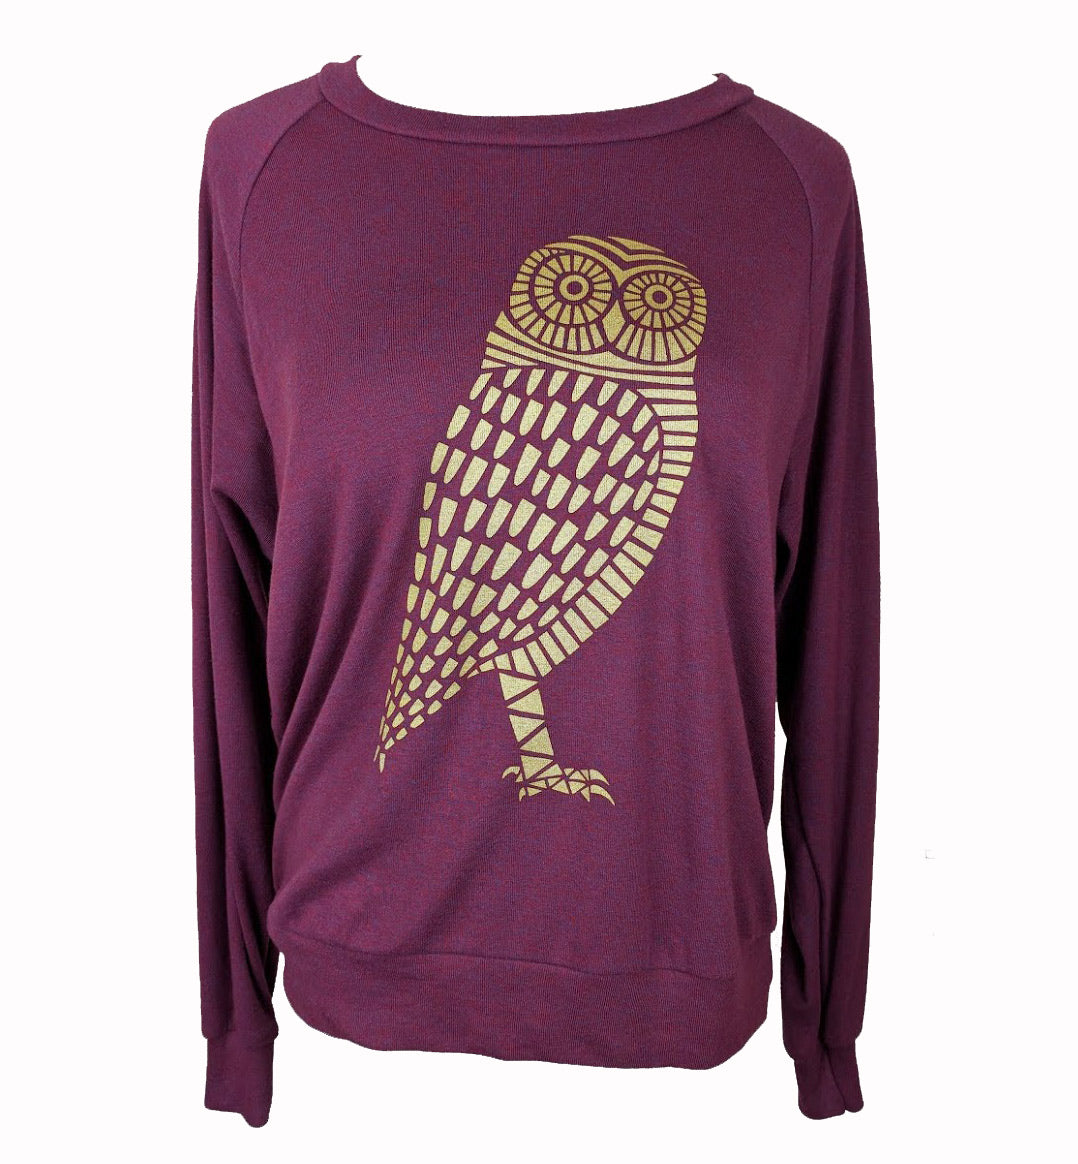 Gold Owl Sweatshirt on Cranberry